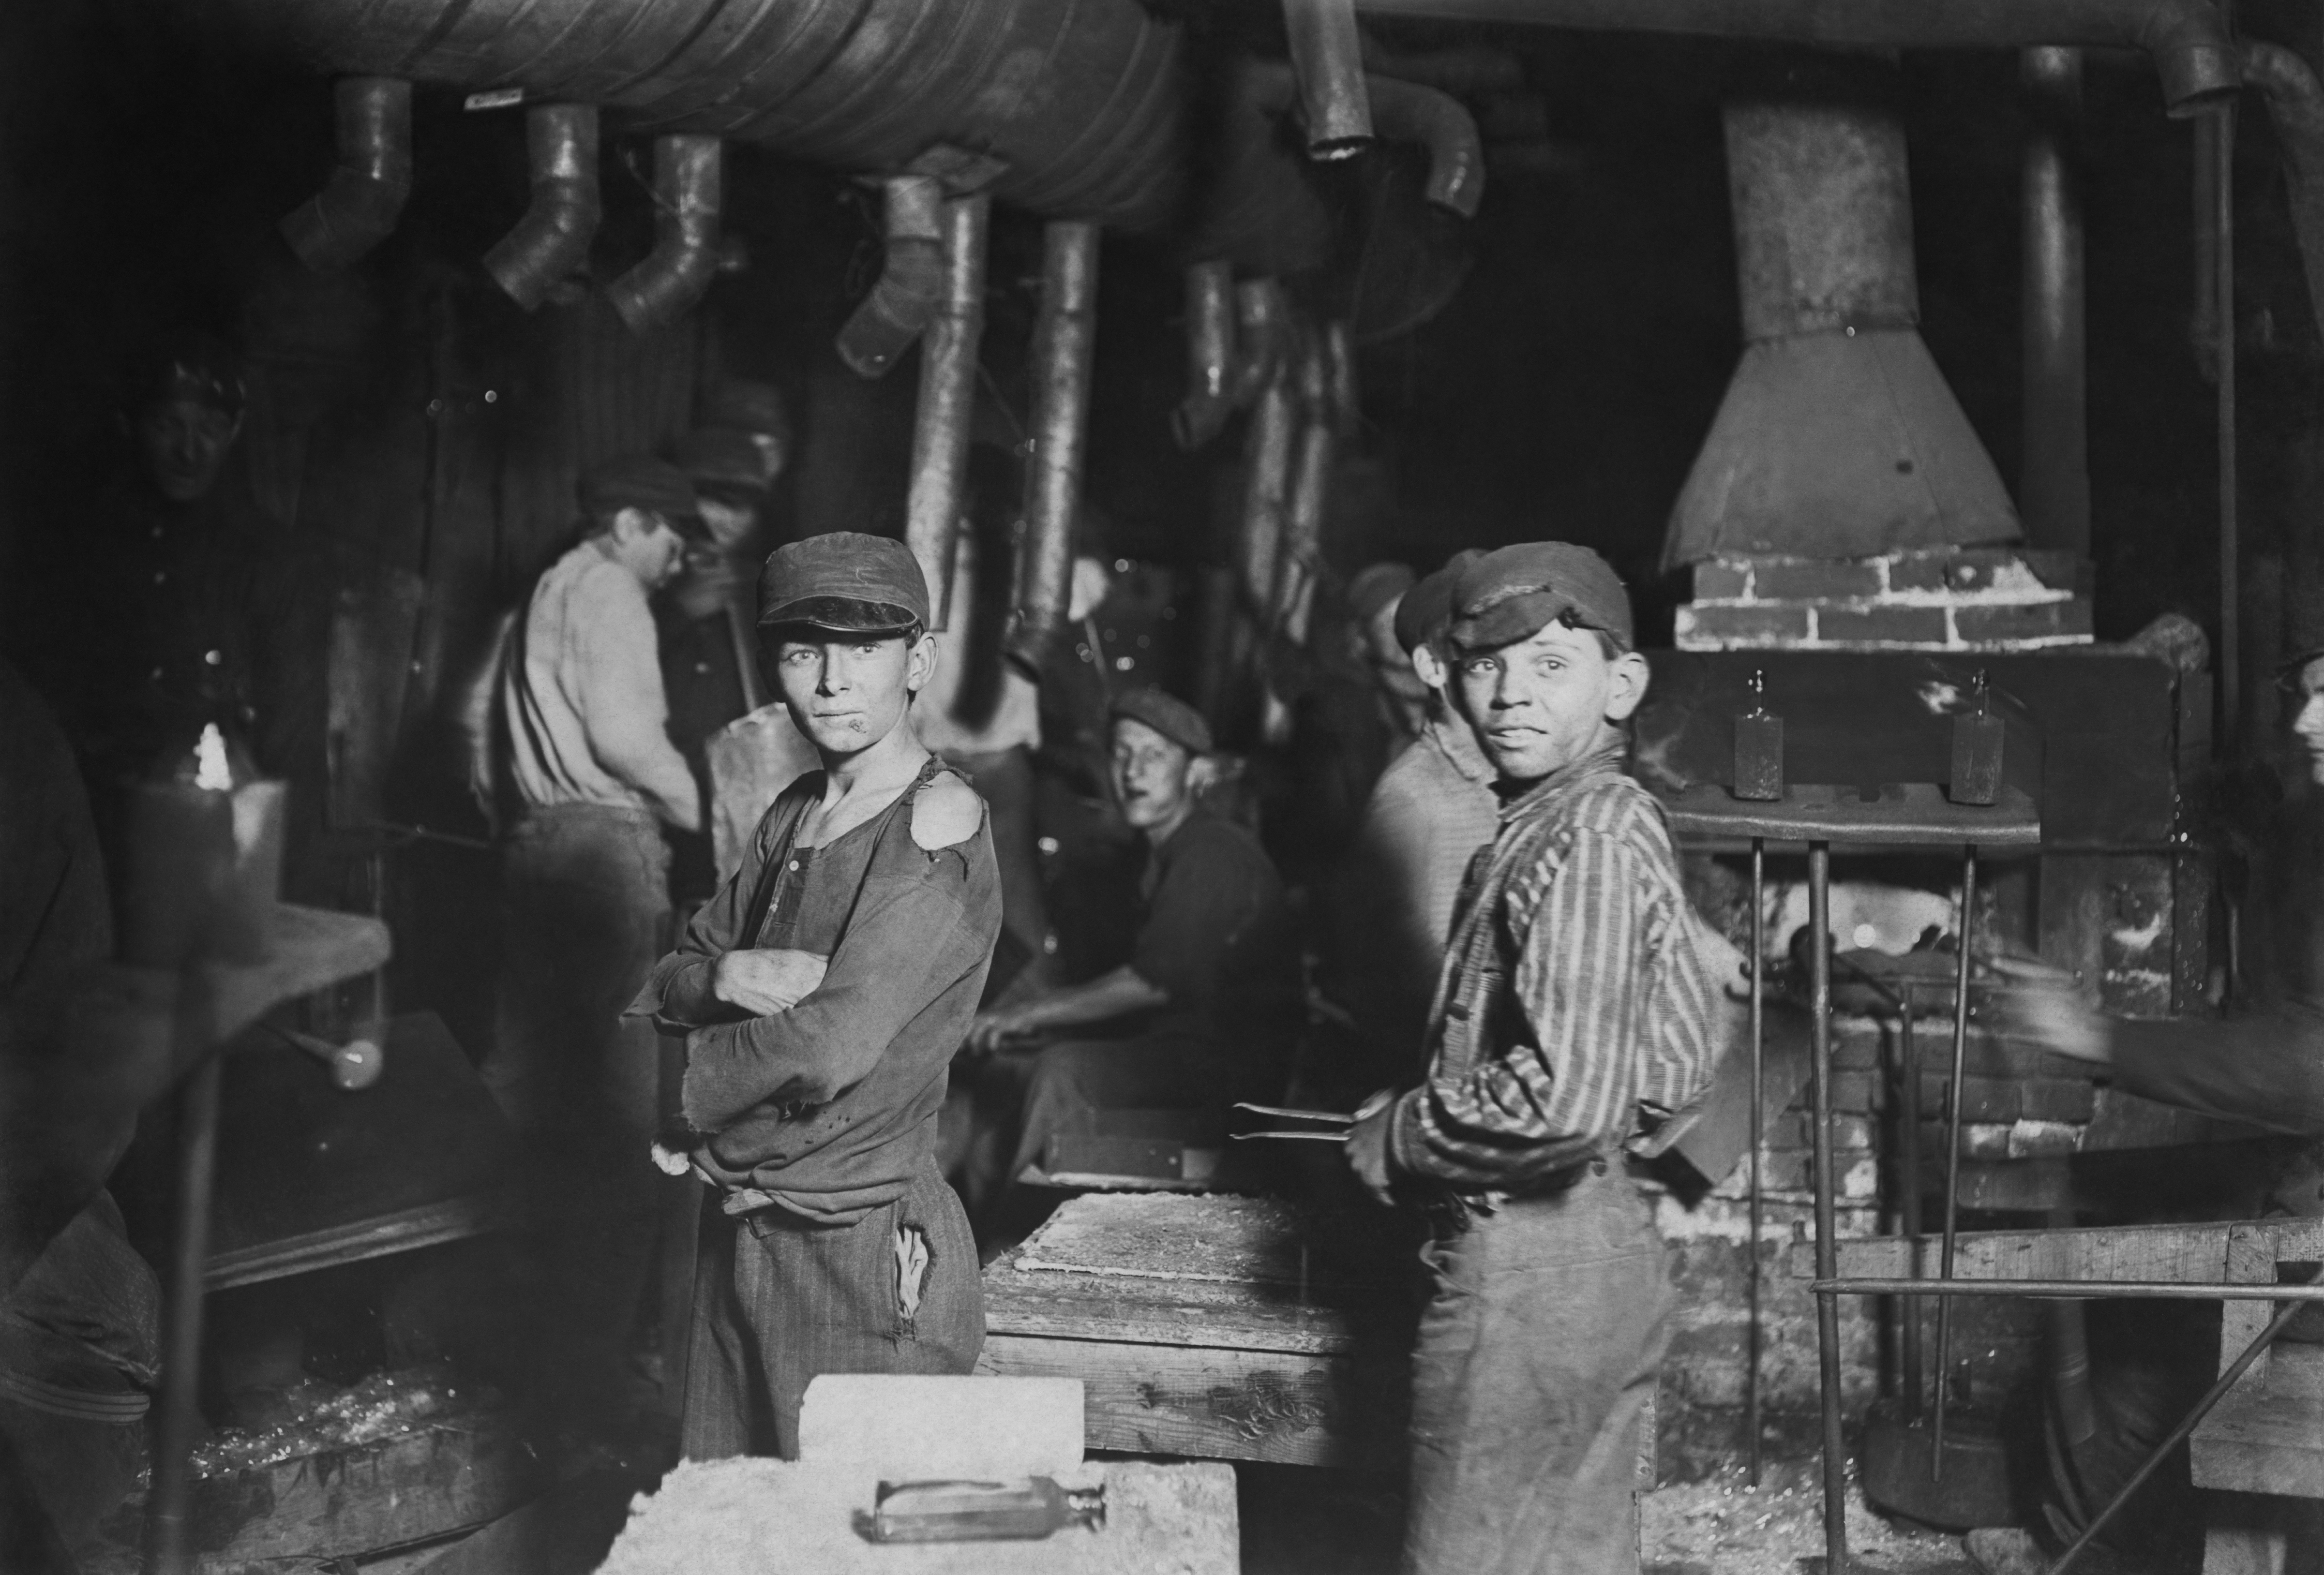 the industrial revolution and child labor With the onset of the industrial revolution in britain in the late 18th century, there was a rapid increase in the industrial exploitation of labour, including child labour industrial cities such as birmingham, manchester and liverpool rapidly grew from small villages into large cities and improving child mortality rates.